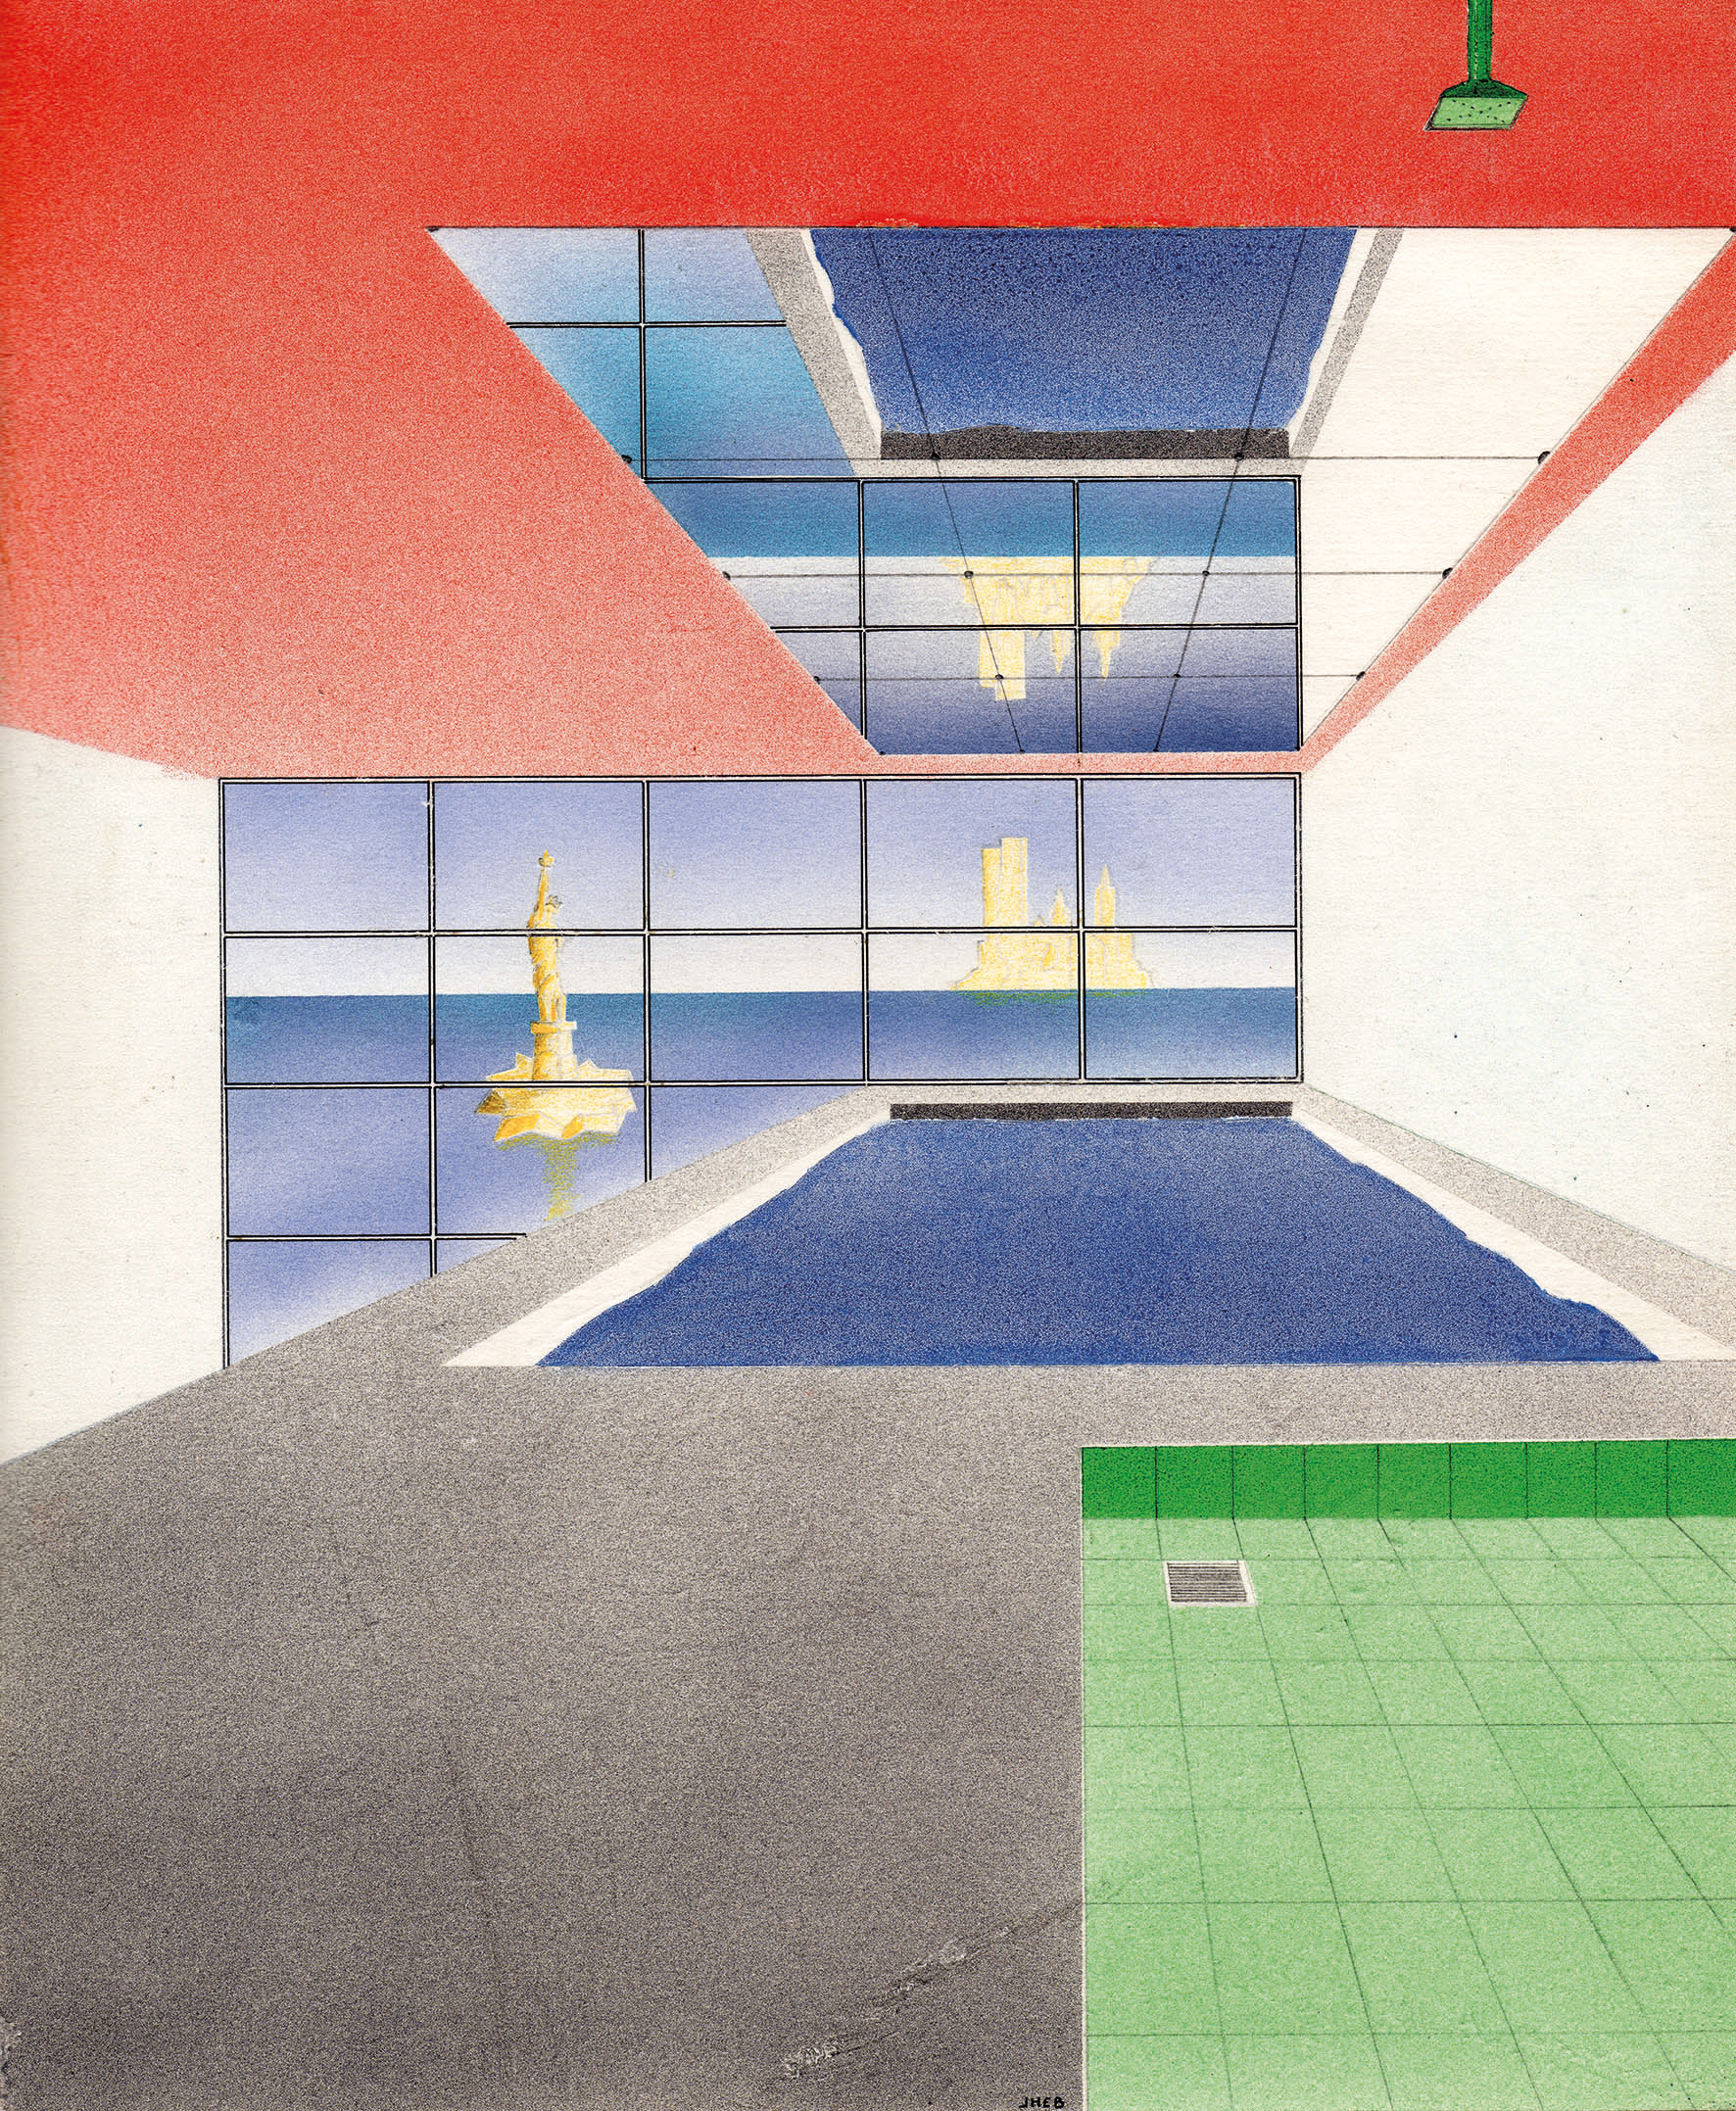 Reminiscences / The bath-pool for Rem Koolhaas, 1985 Airbrush painting, pencil on paper 25.7 x 21.2 cm